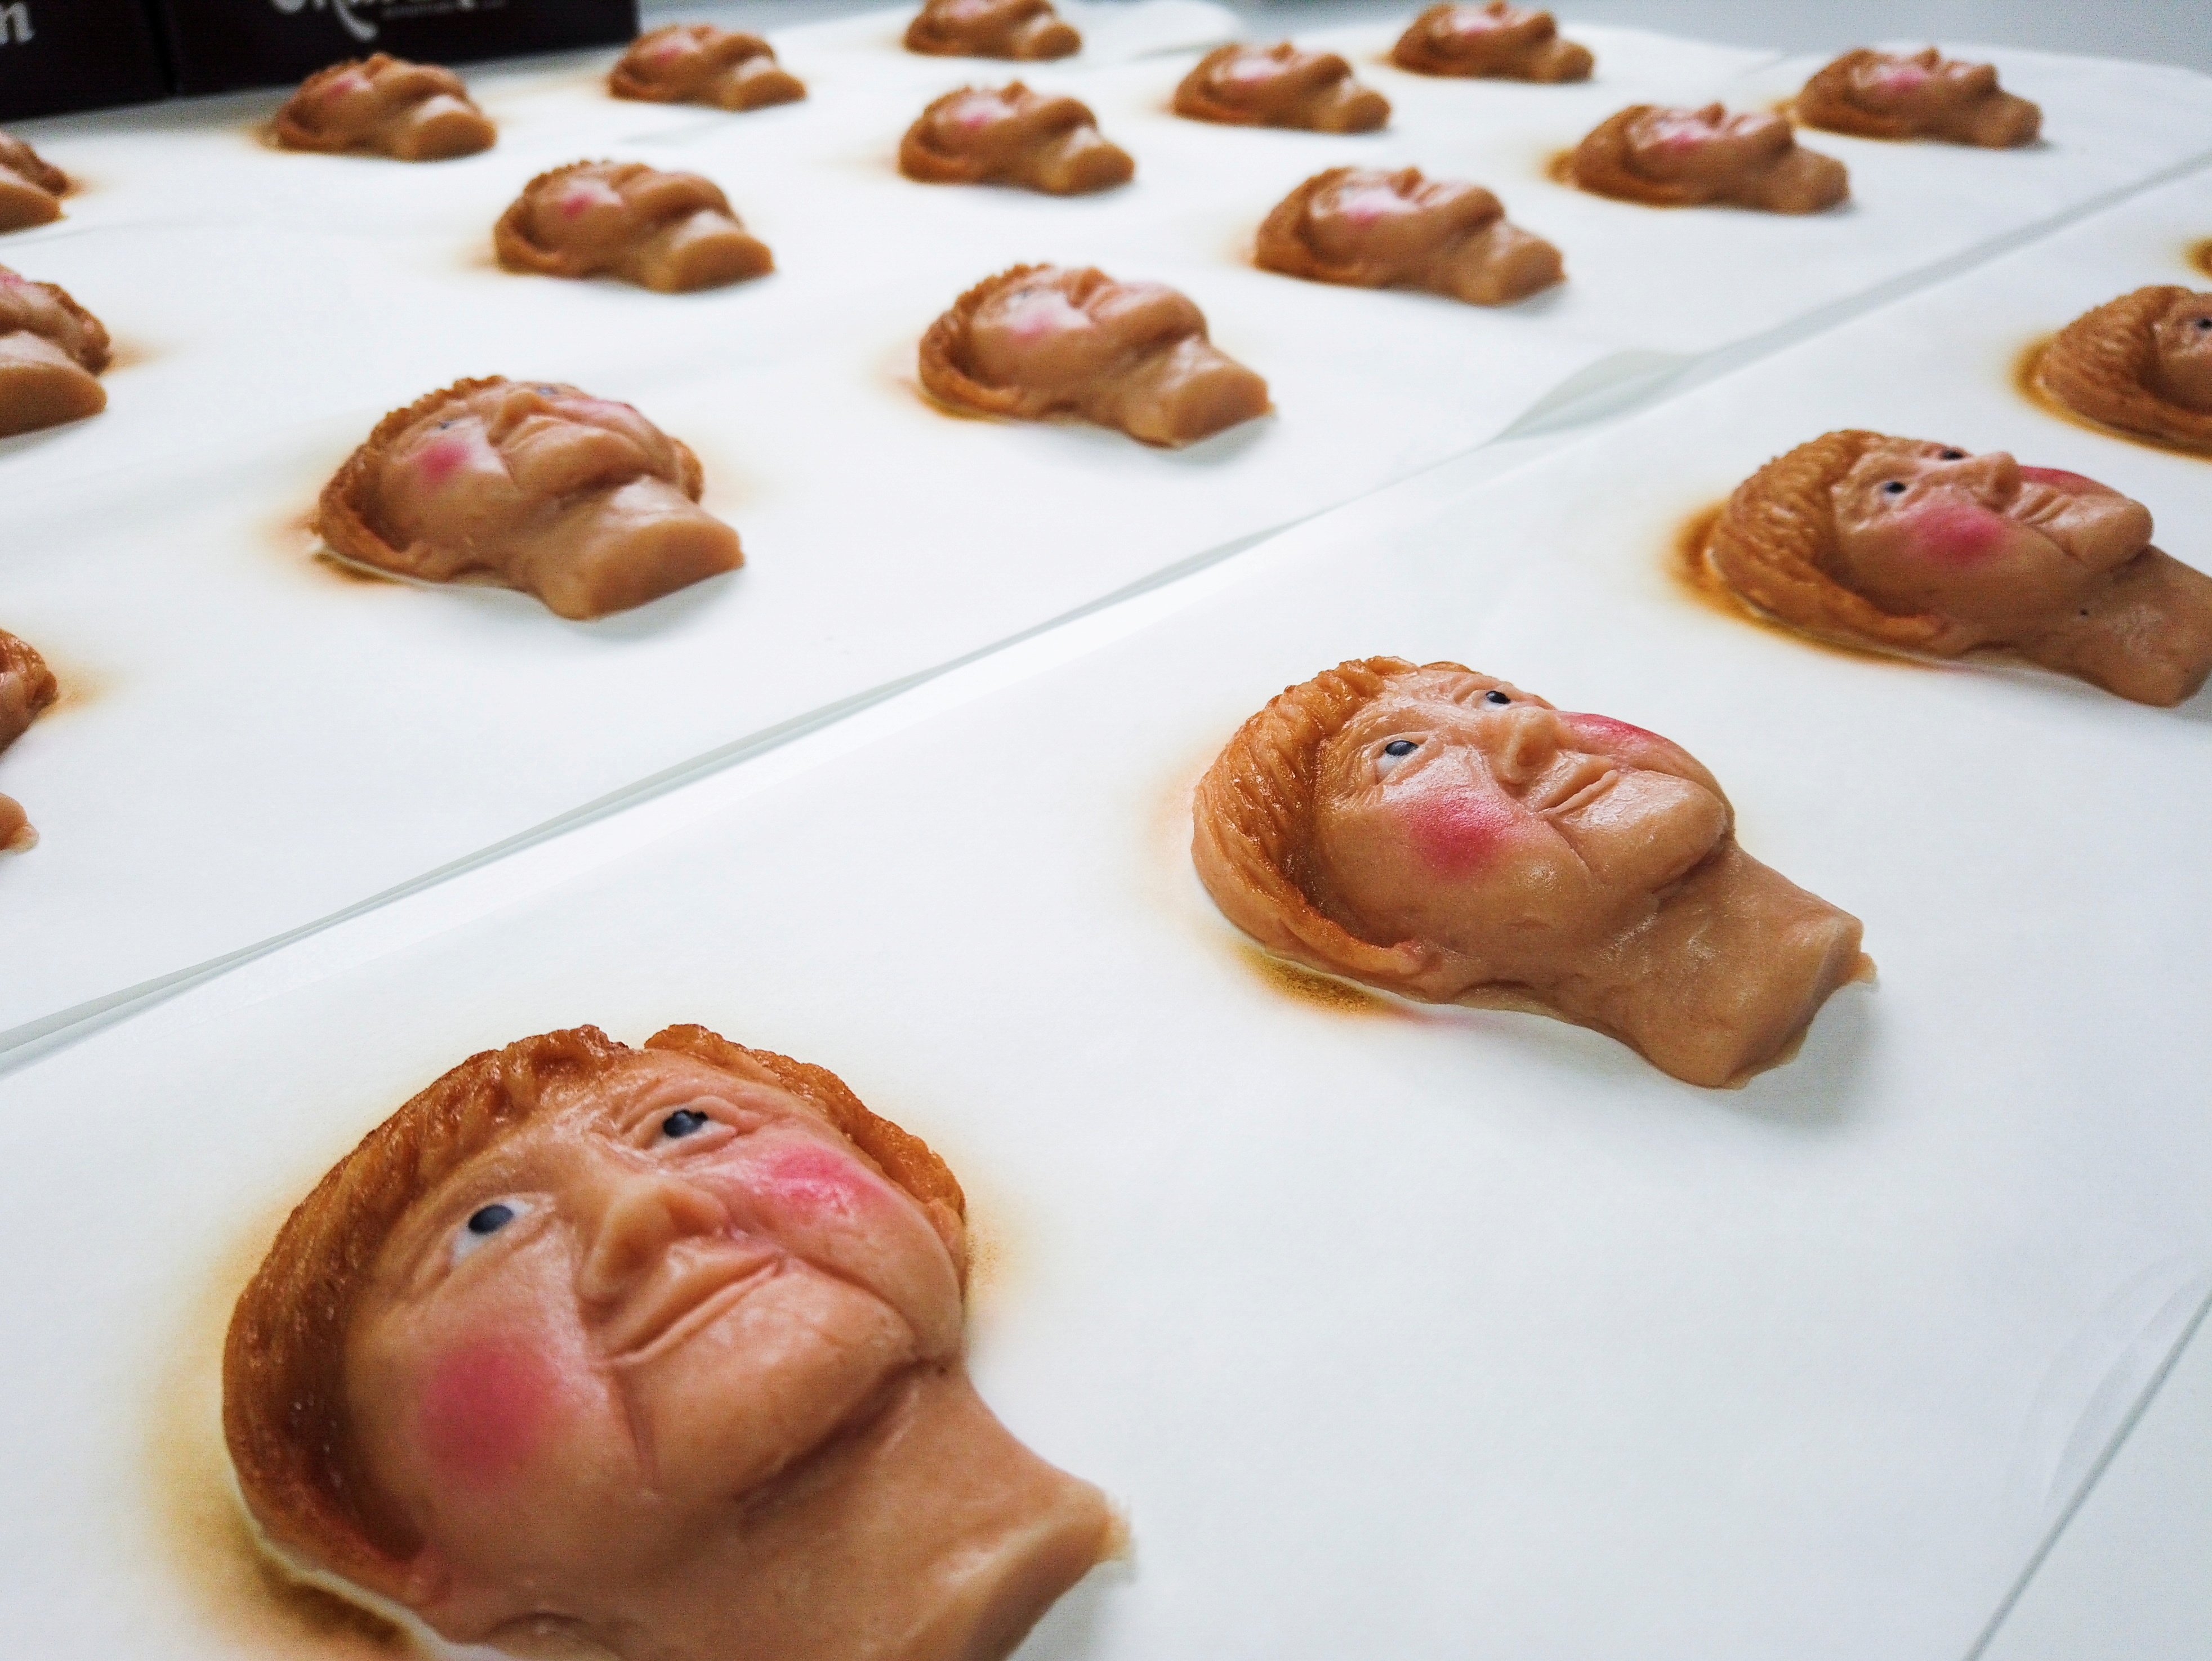 Marzipan cookies depicting German Chancellor Angela Merkel made by a German confectioner ahead of the September 26 elections, are displayed in Weilbach, Germany, September 14, 2021. REUTERS/Annkathrin Weis